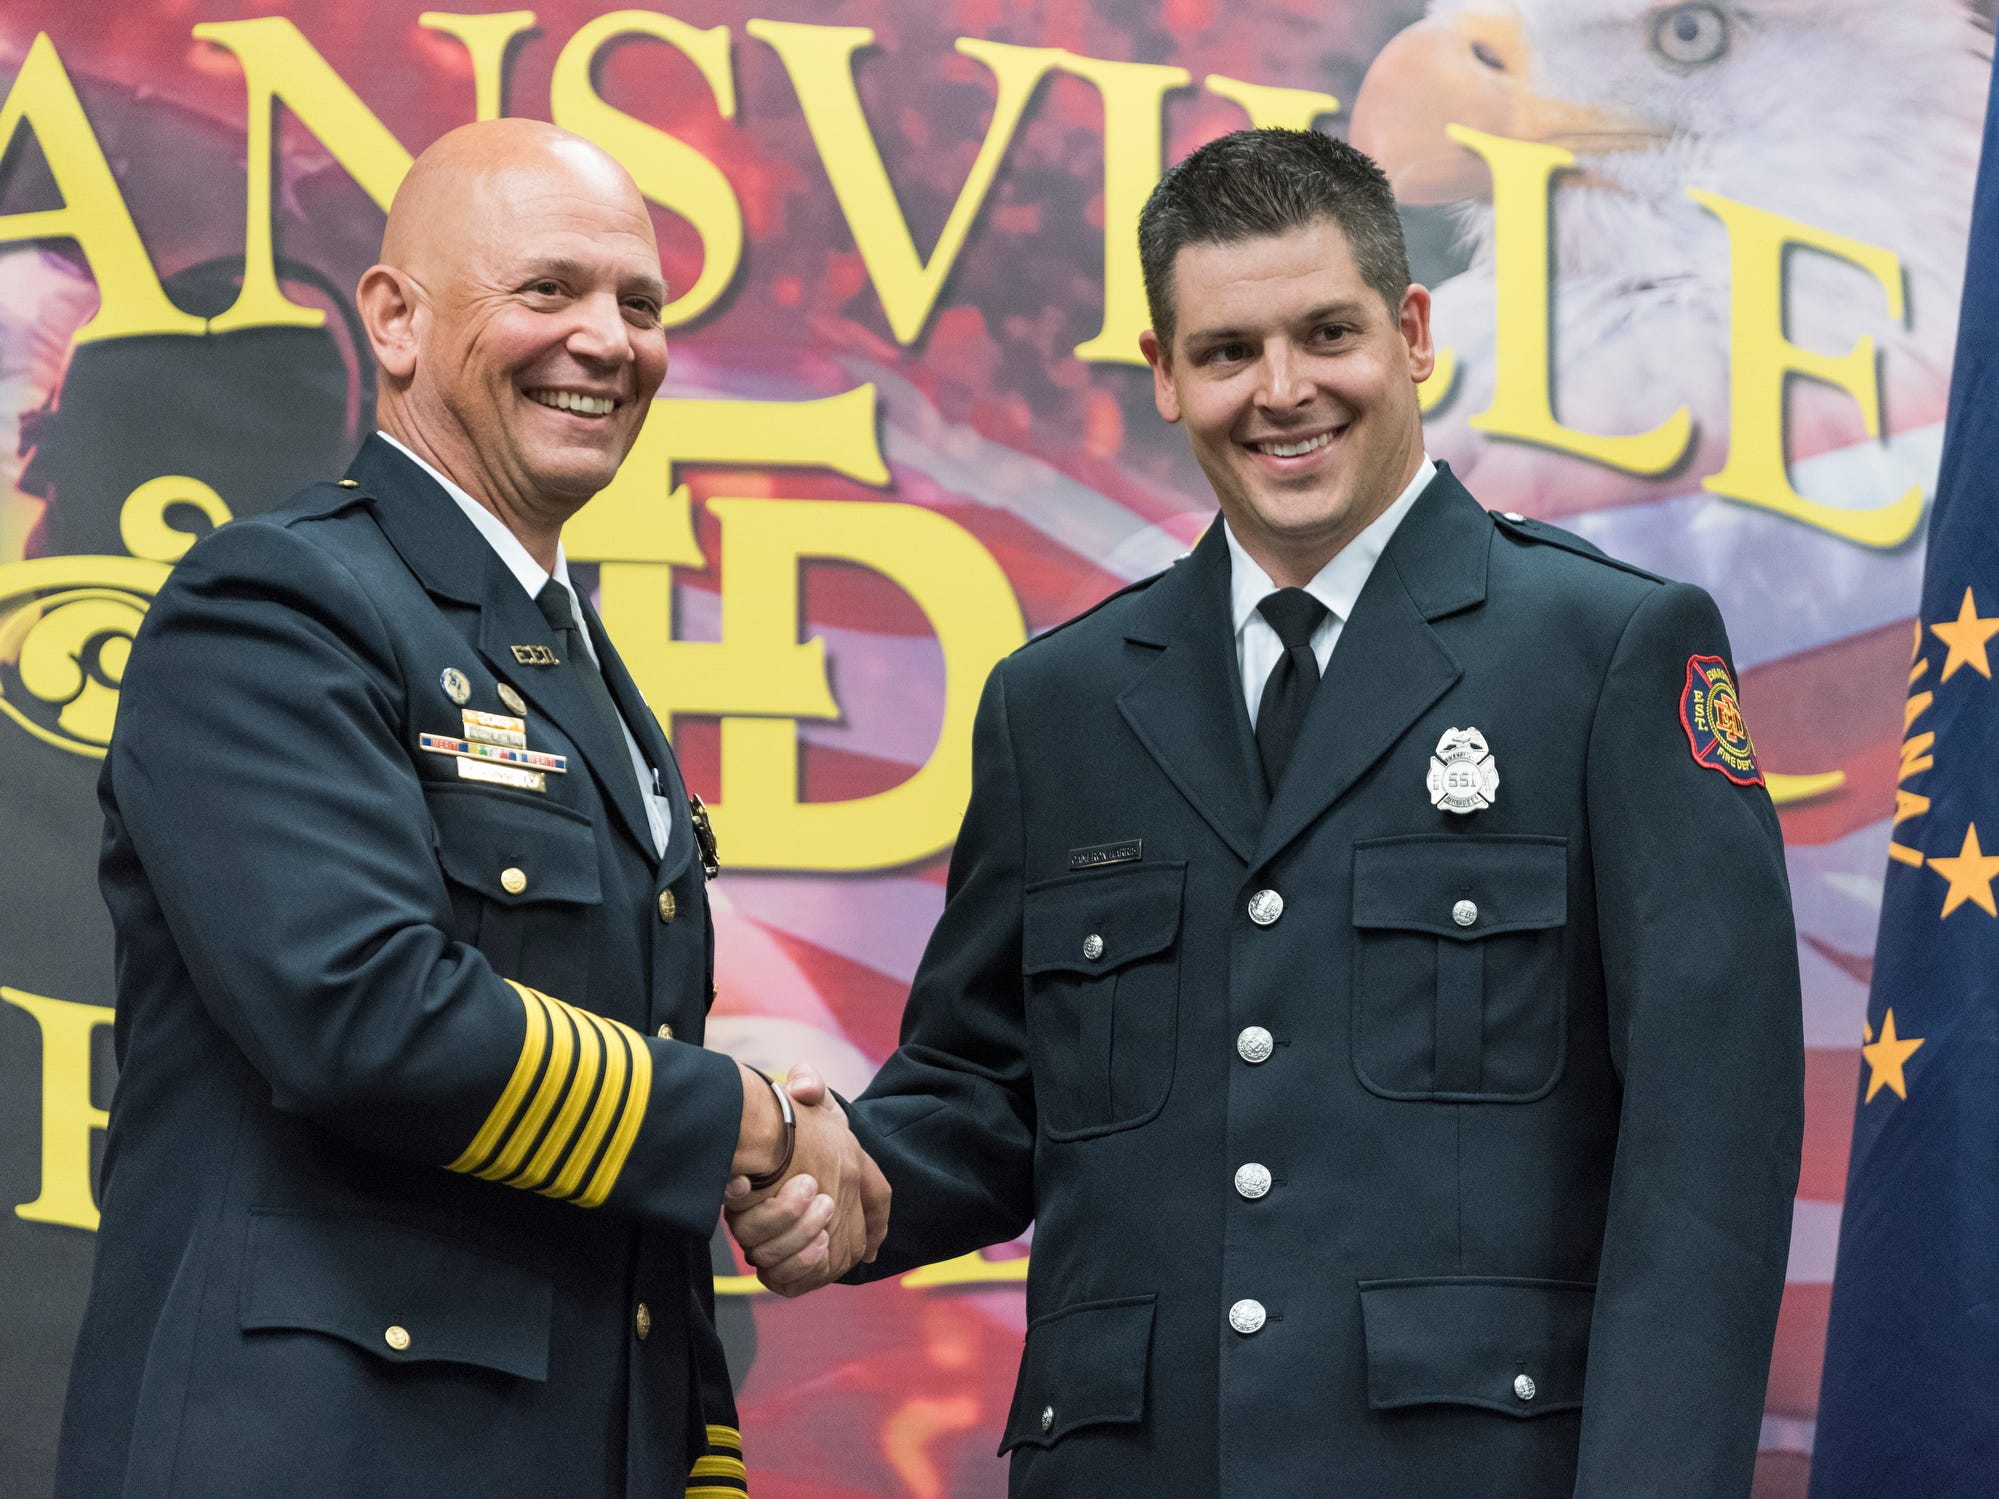 Evansville Fire Chief Charles Connolly, left, poses for a picture with new probationary firefighter Cameron Harris, right, during his graduation ceremony at the American Red Cross Headquarters in Evansville, Ind., Friday, Oct. 12, 2018.